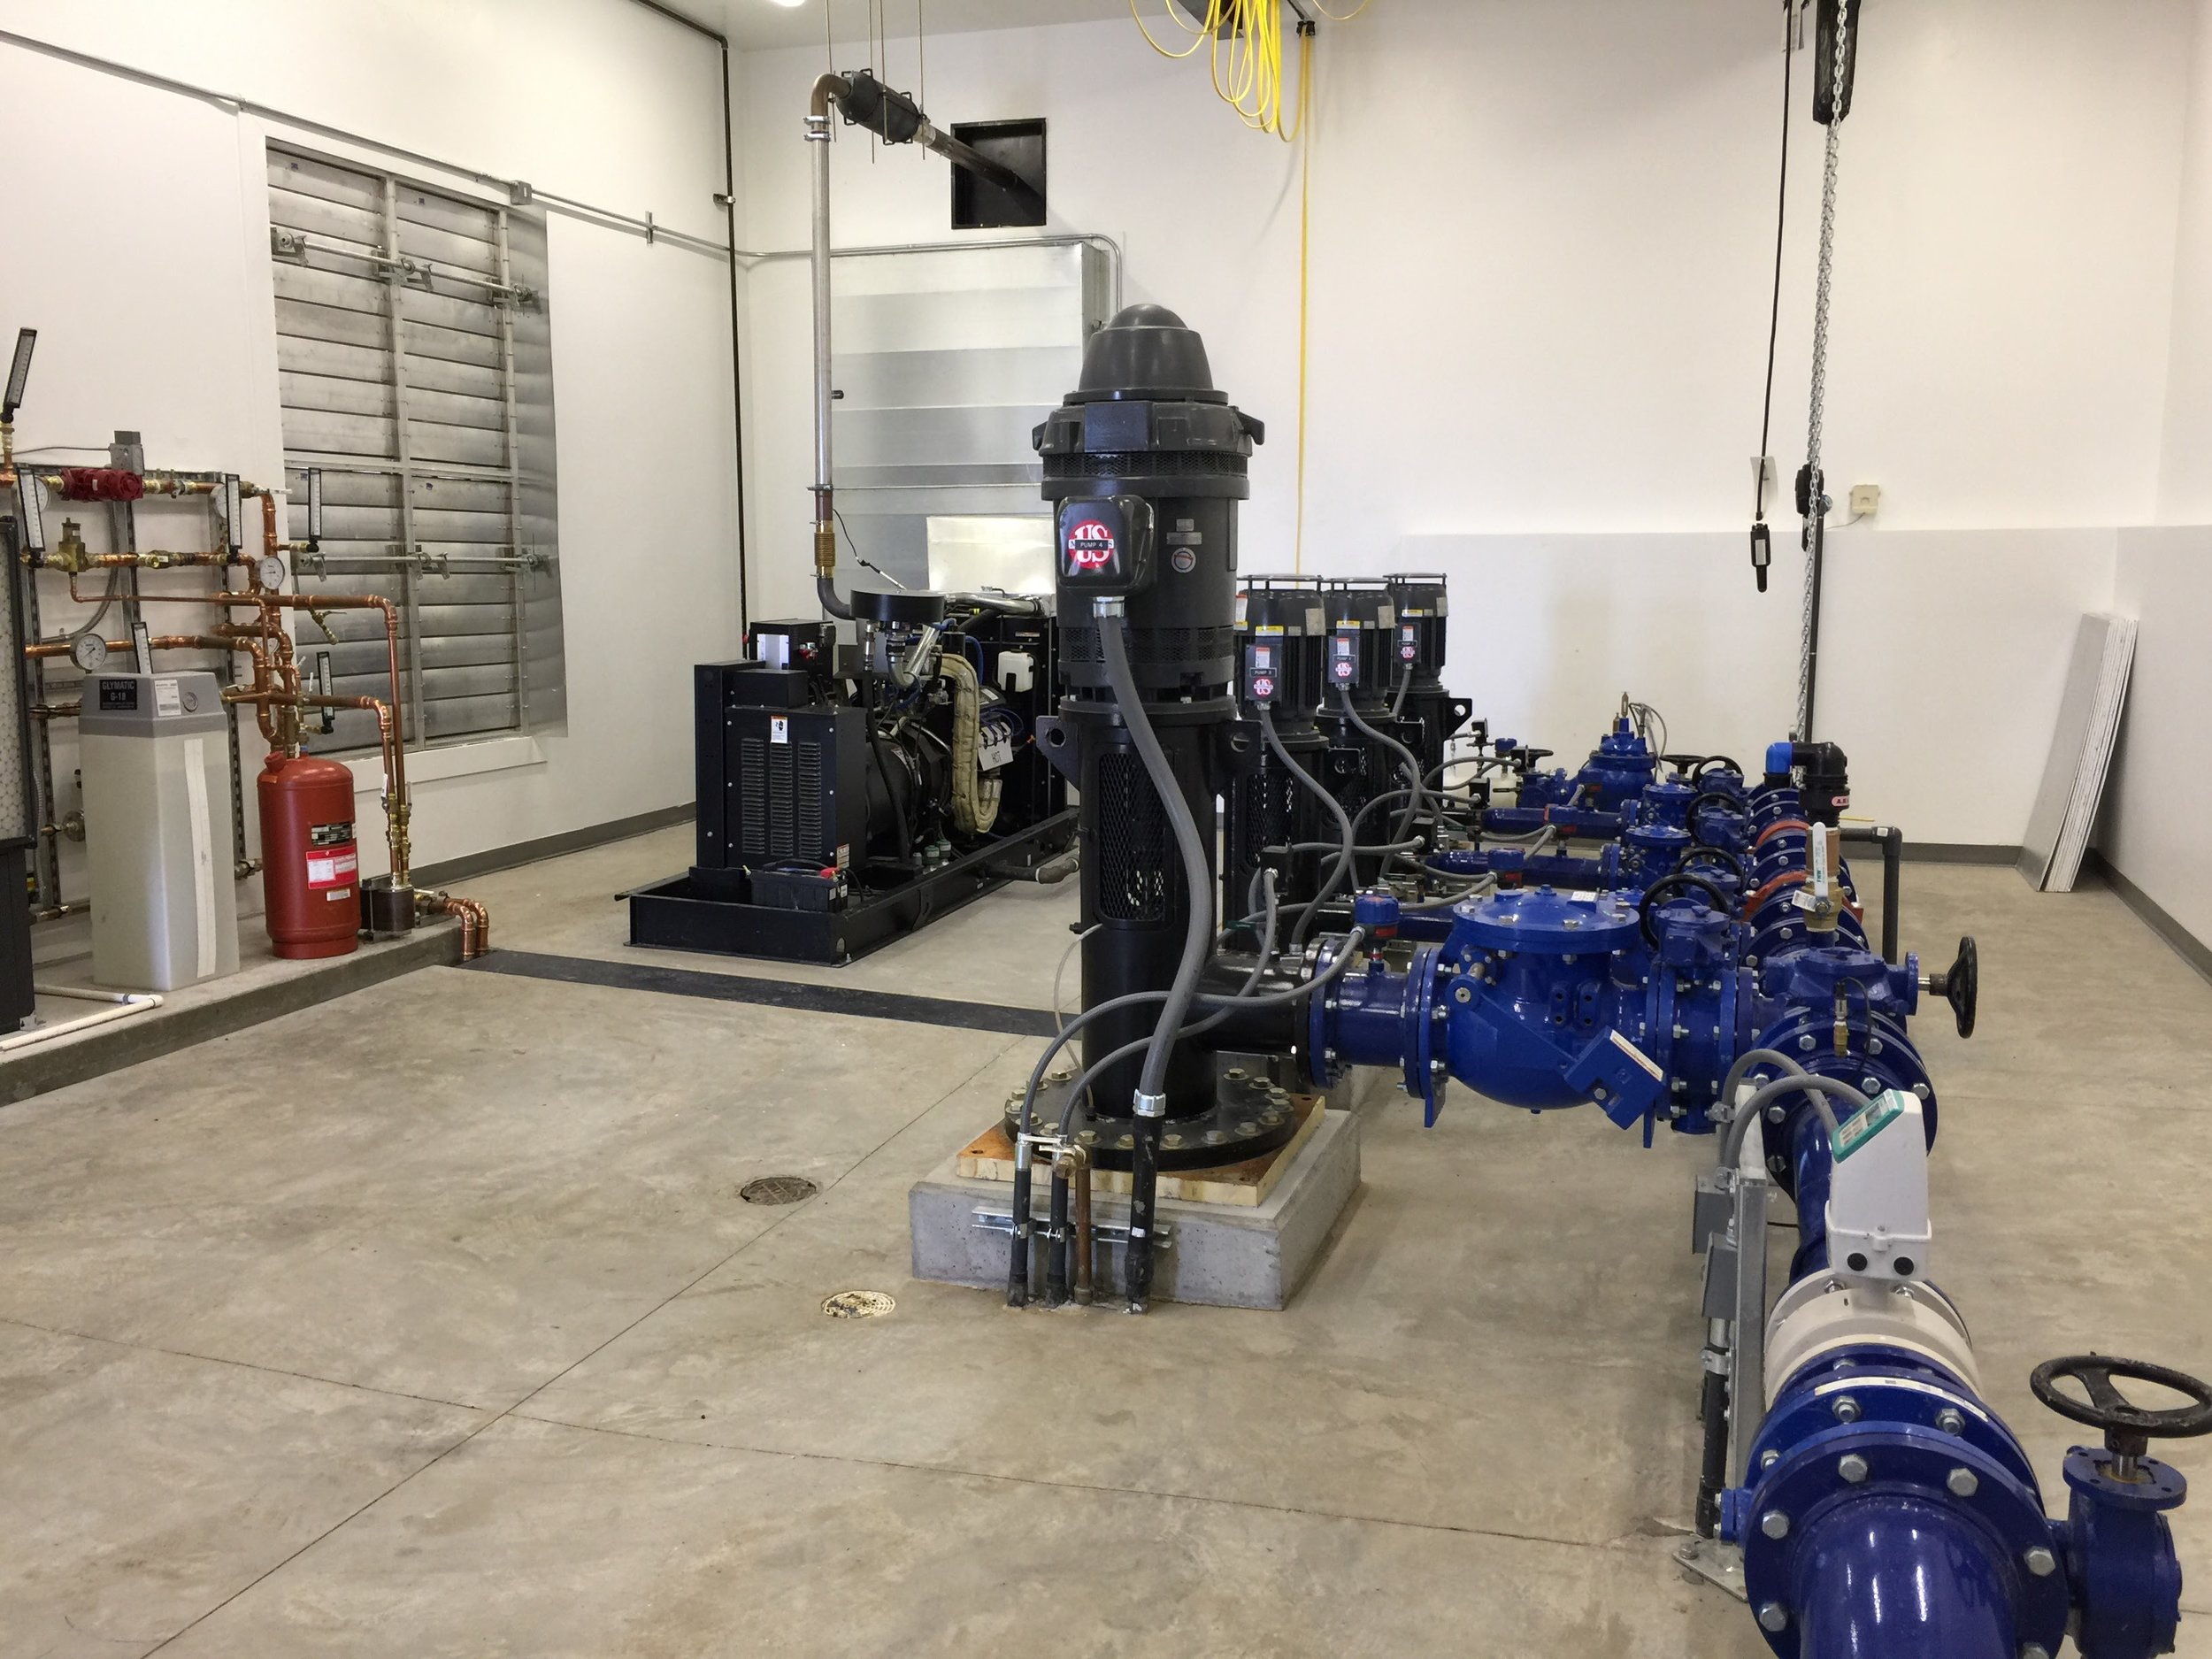 Newly constructed Summit Booster Pump Station at the top of Promontory.